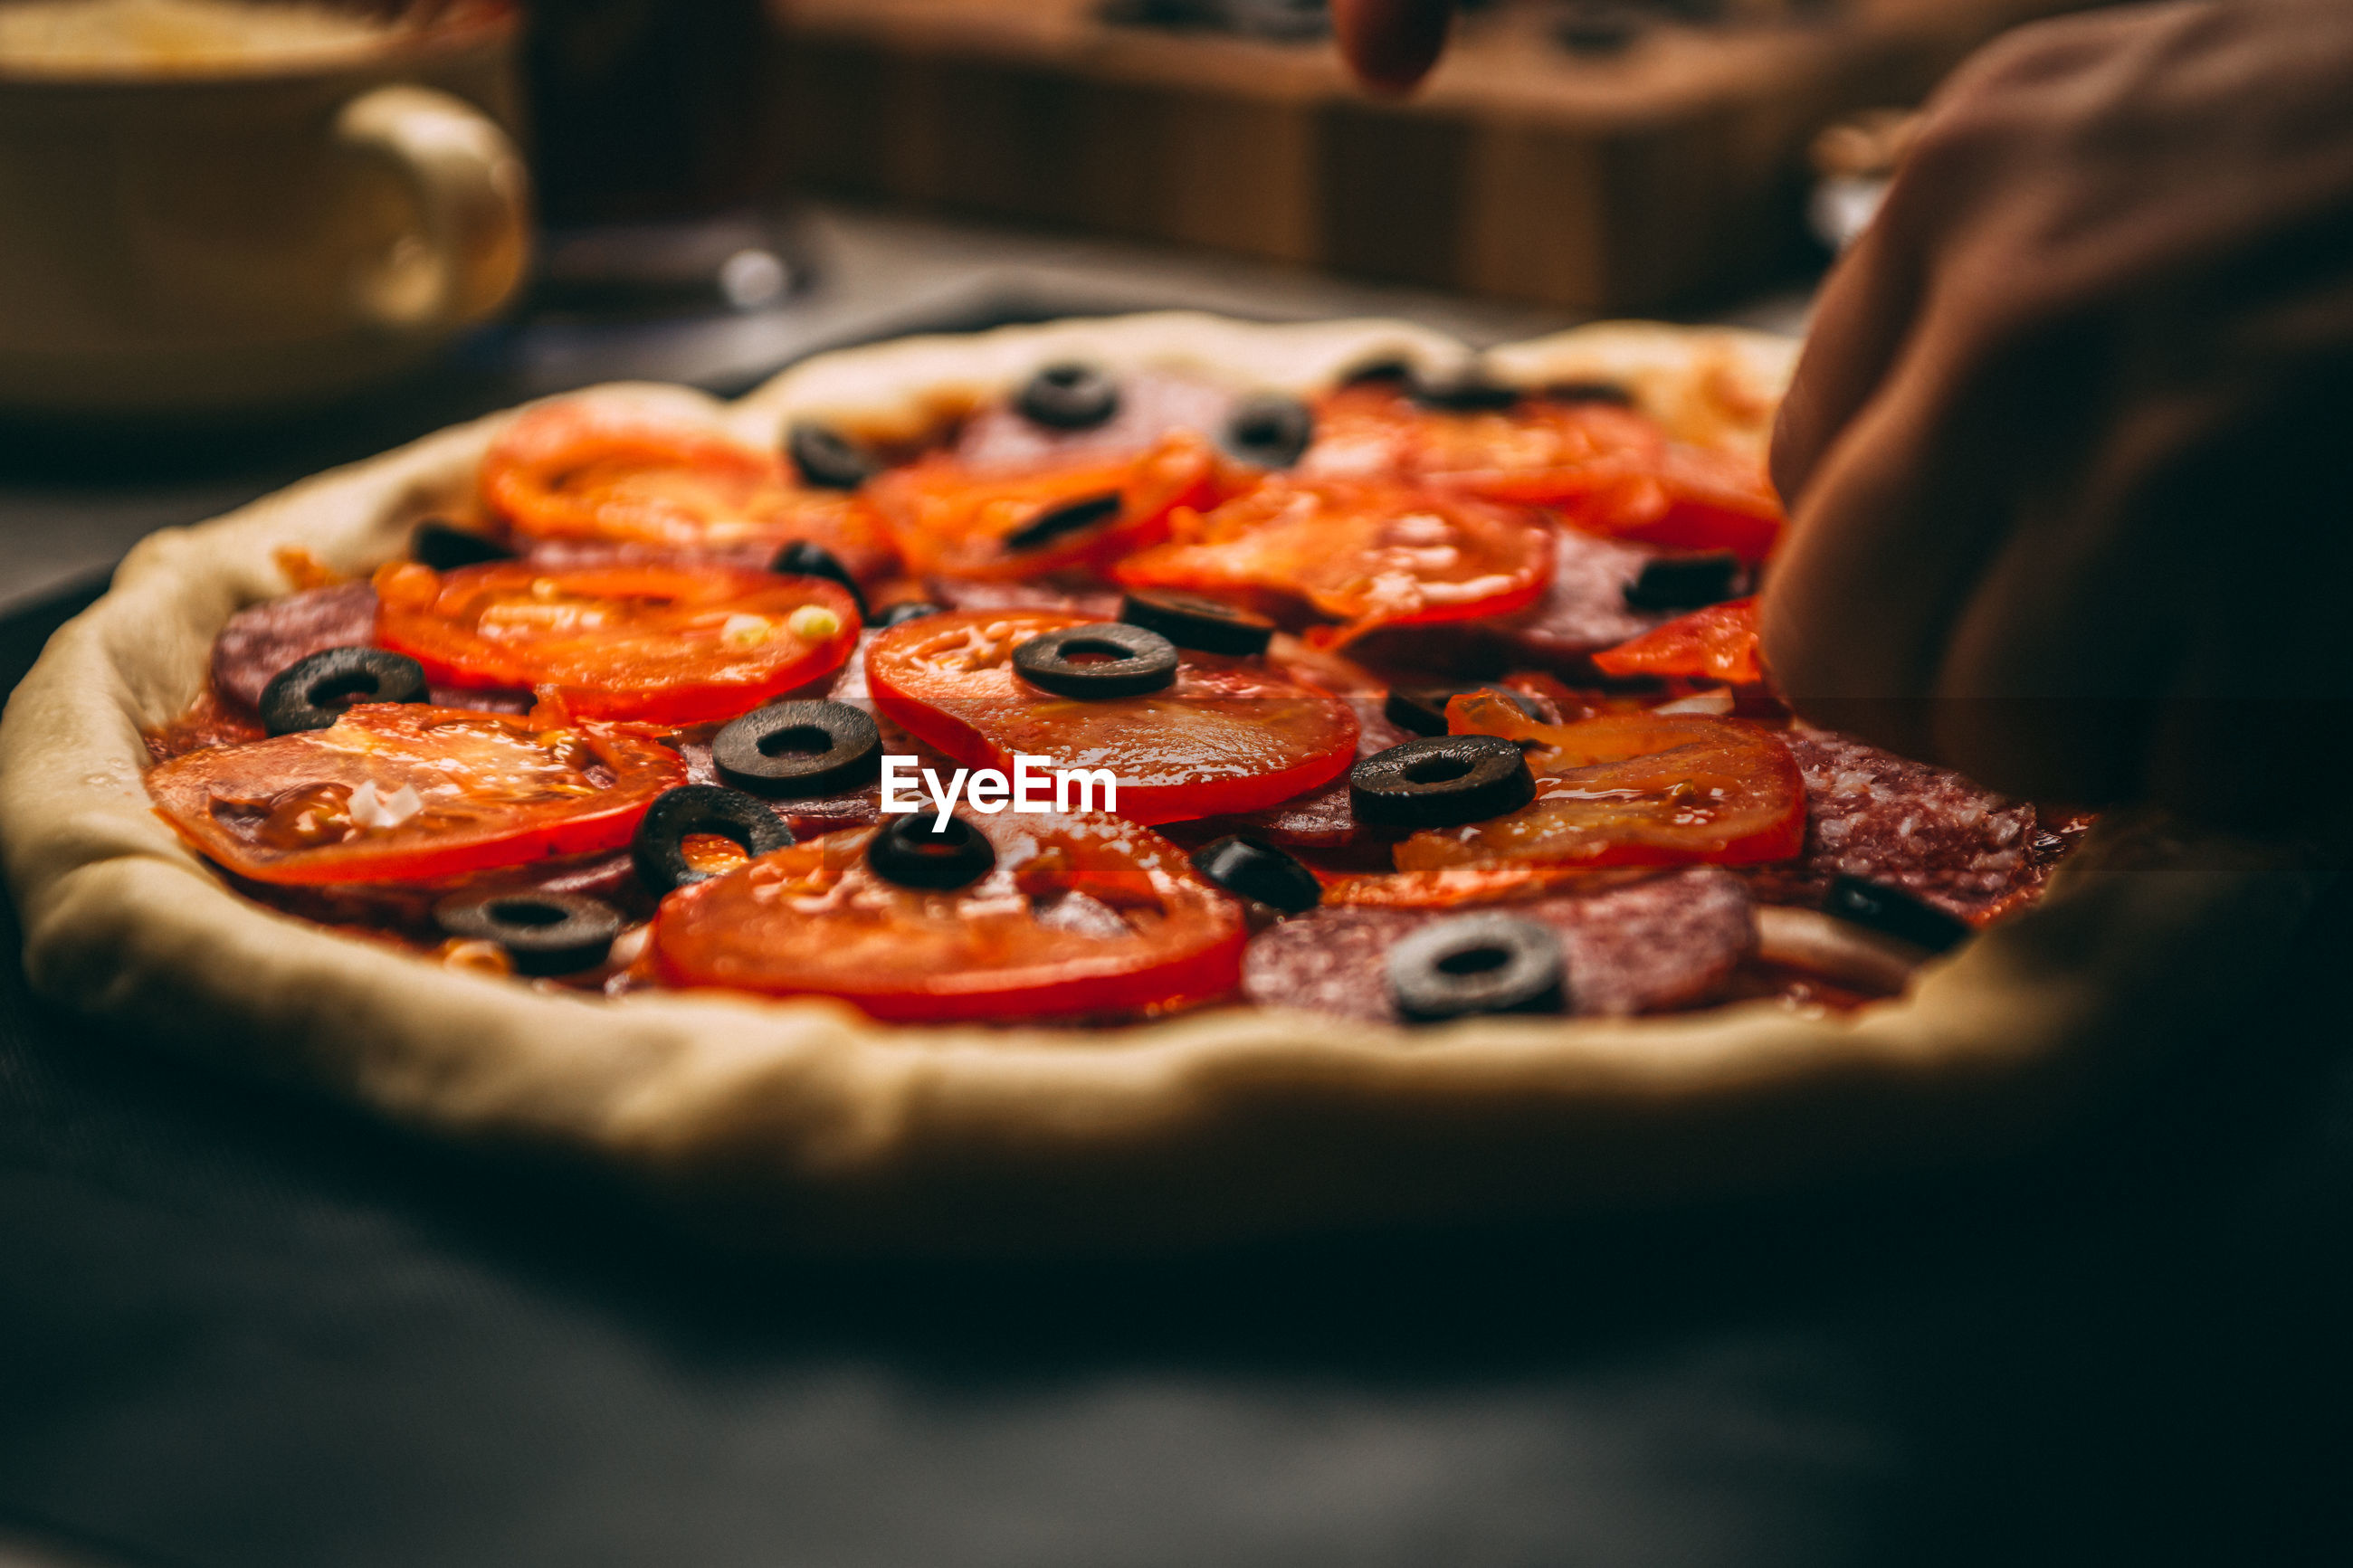 CLOSE-UP OF PIZZA ON ICE